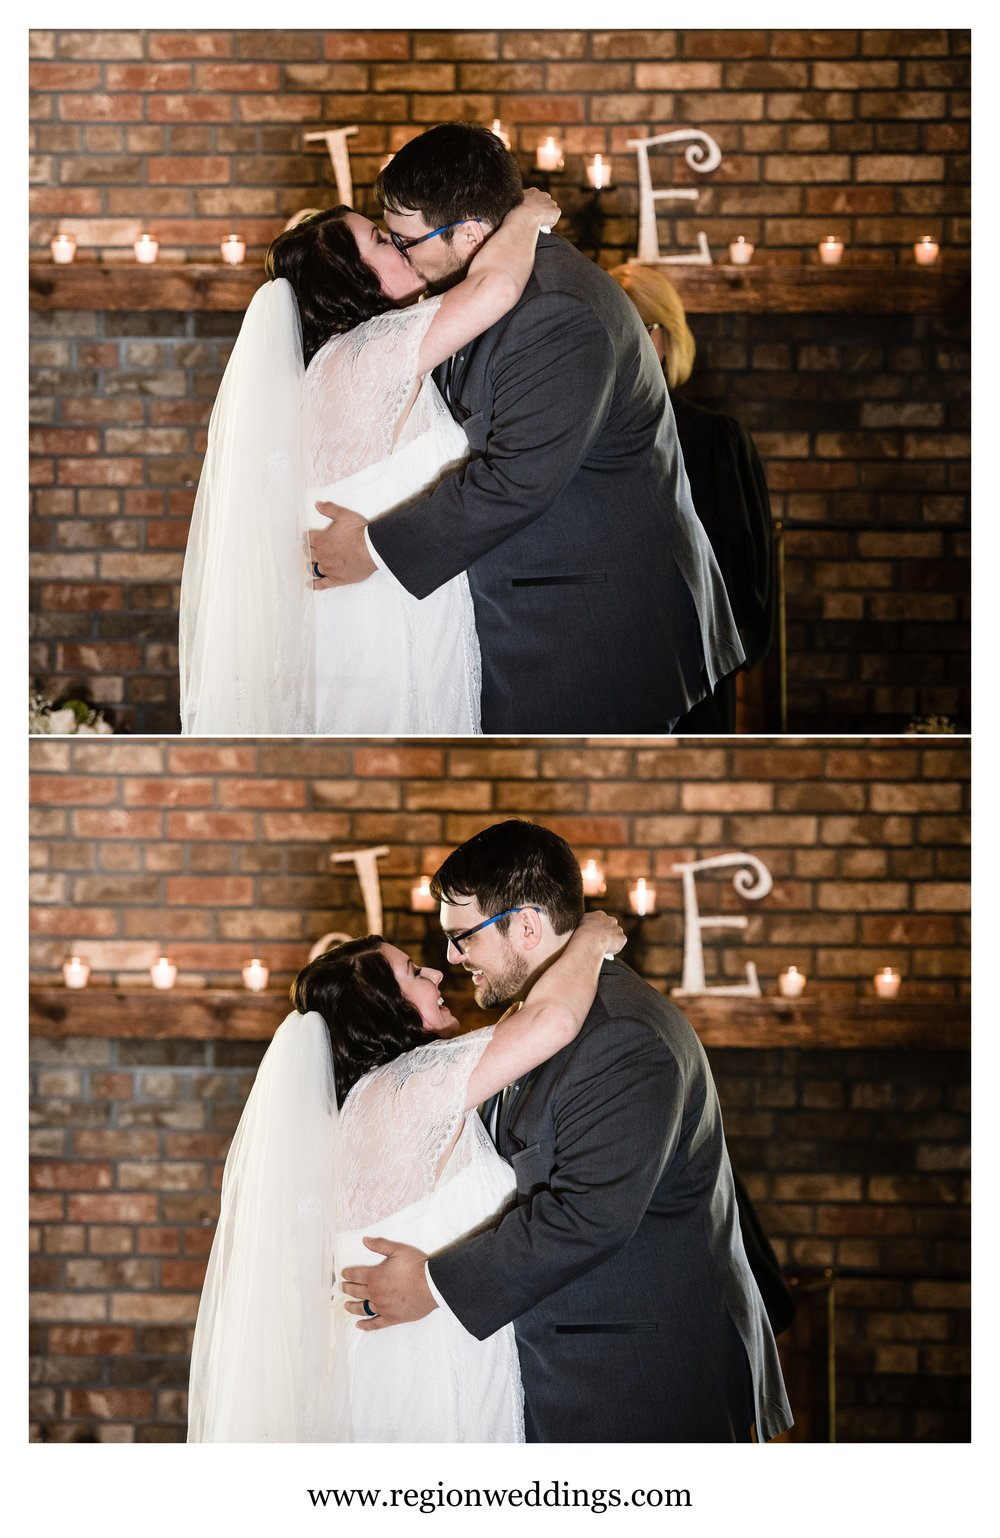 First kiss for the bride and groom.